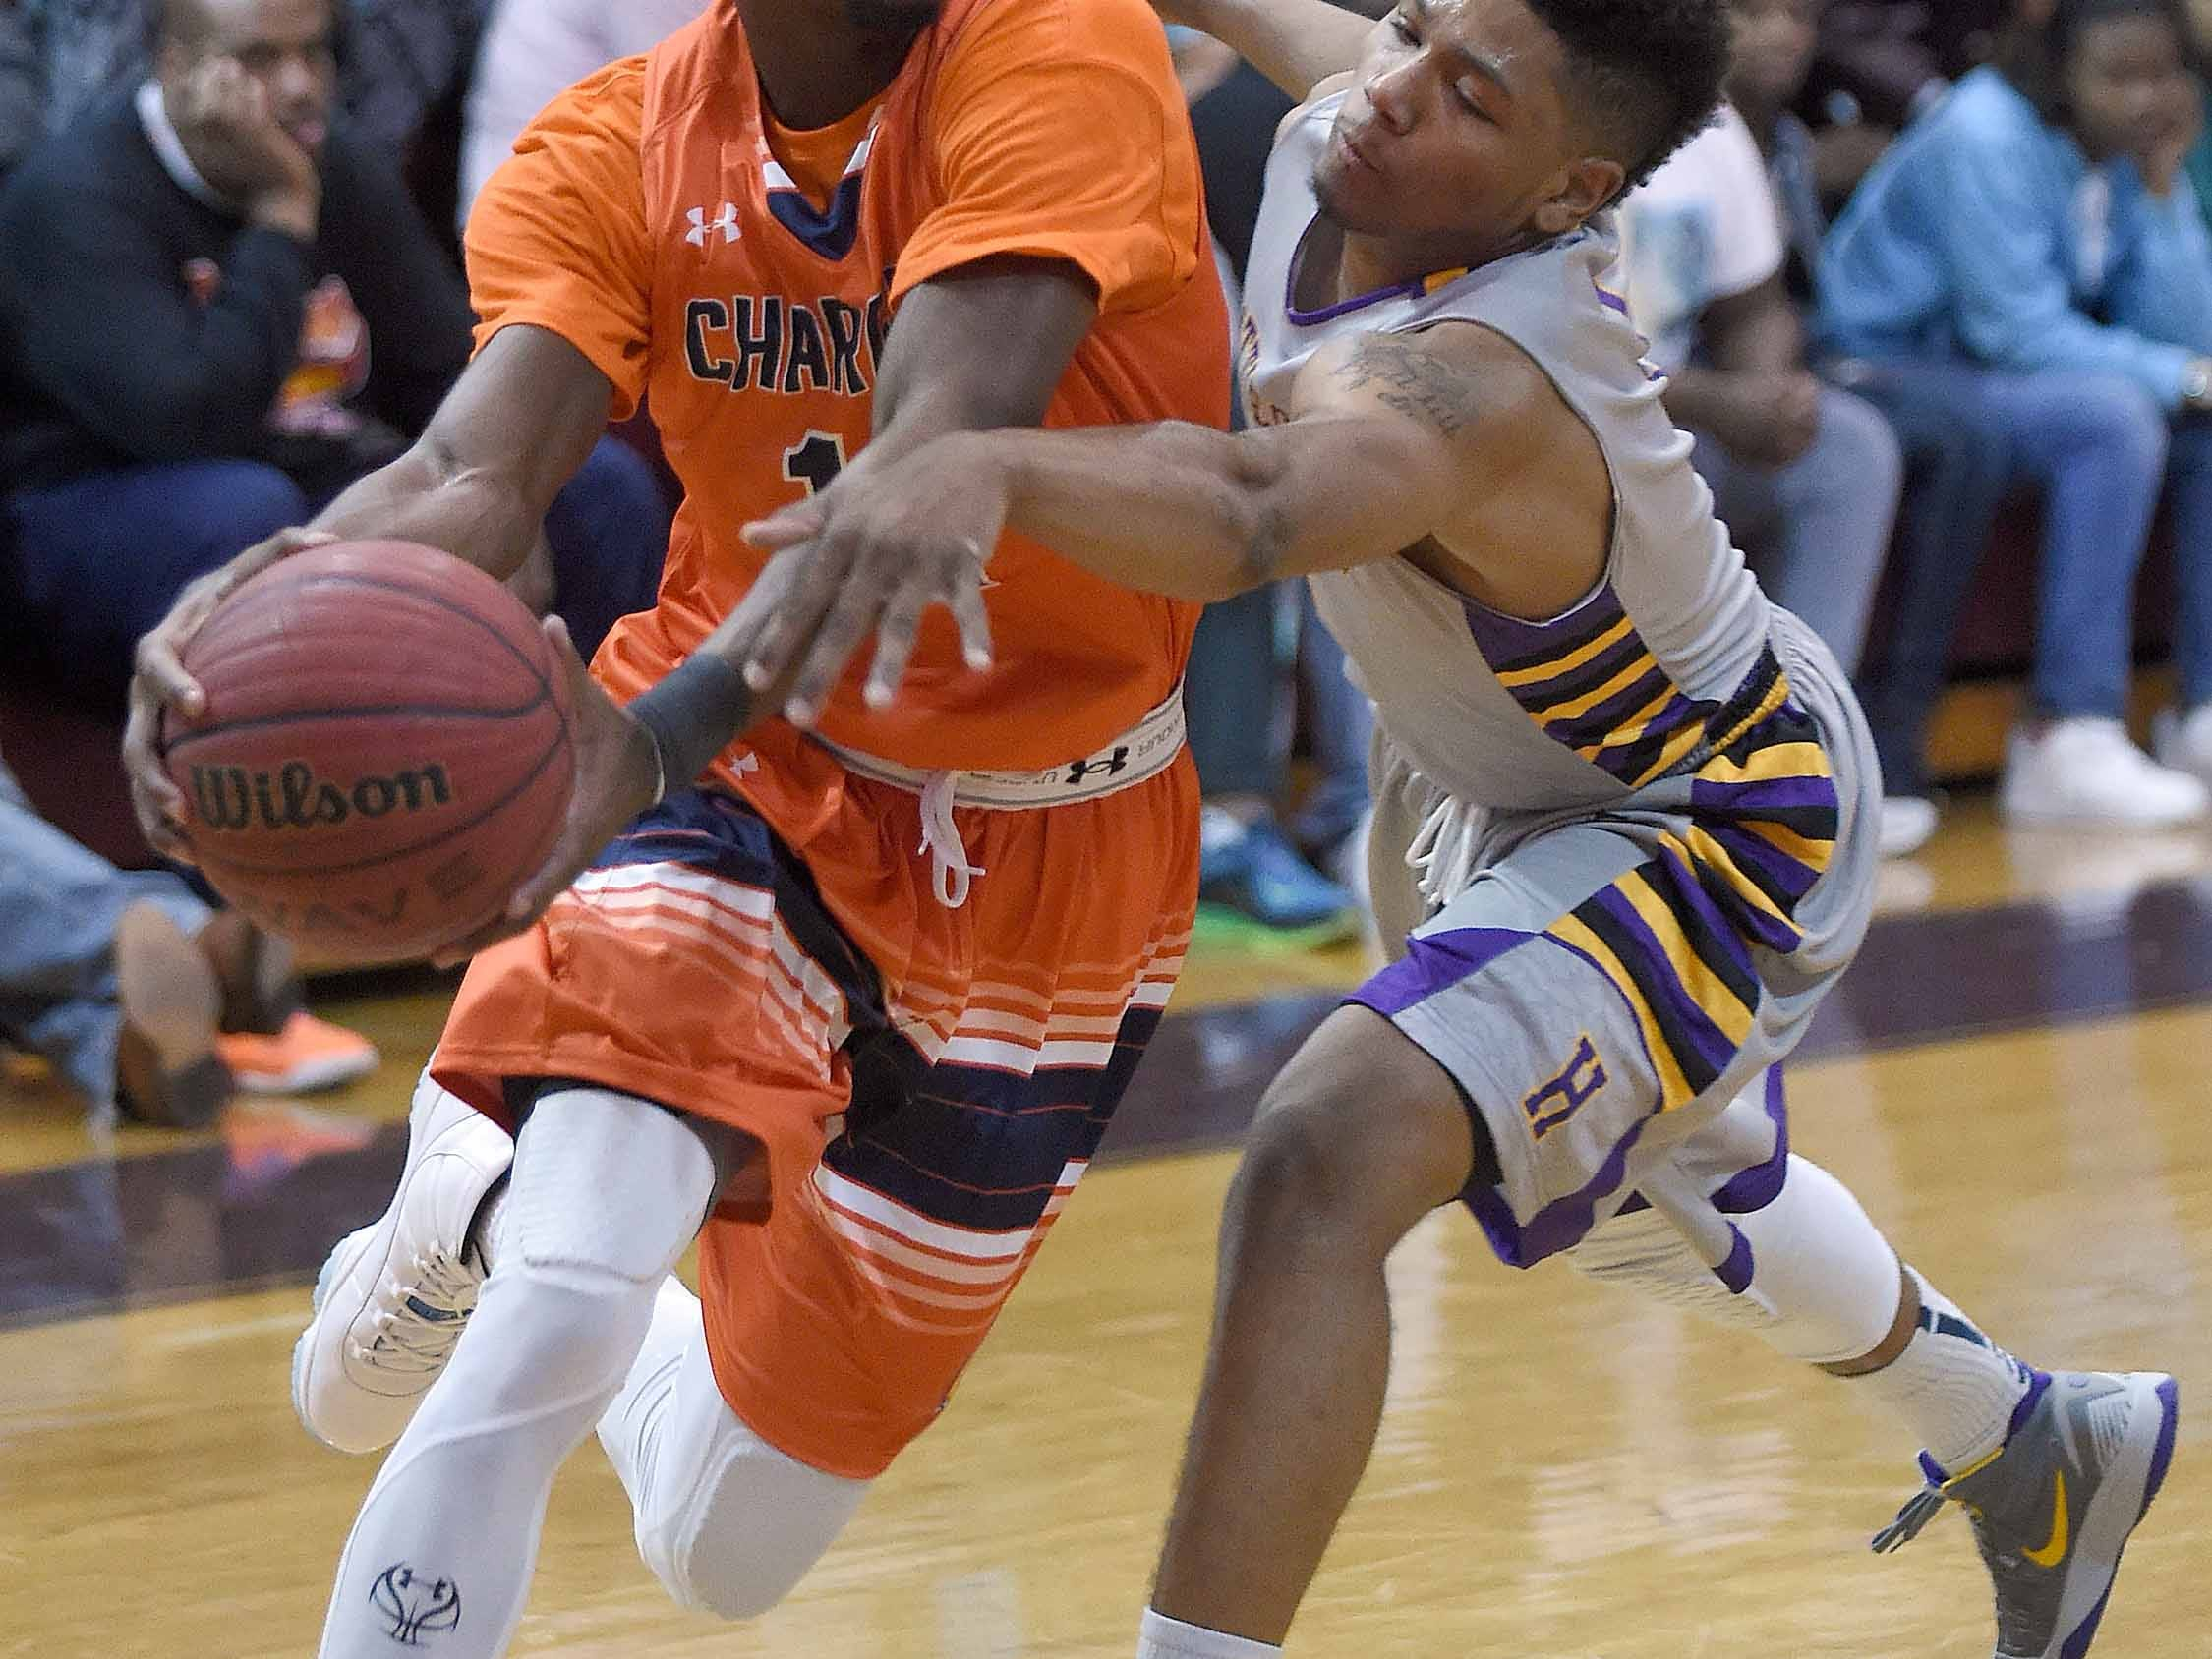 Callaway's Malik Newman (14) drives against Hattiesburg's Tristin Walley on Monday, January 19, 2015, at Lanier High School. Newman had 32 of his 42 points in the first half.